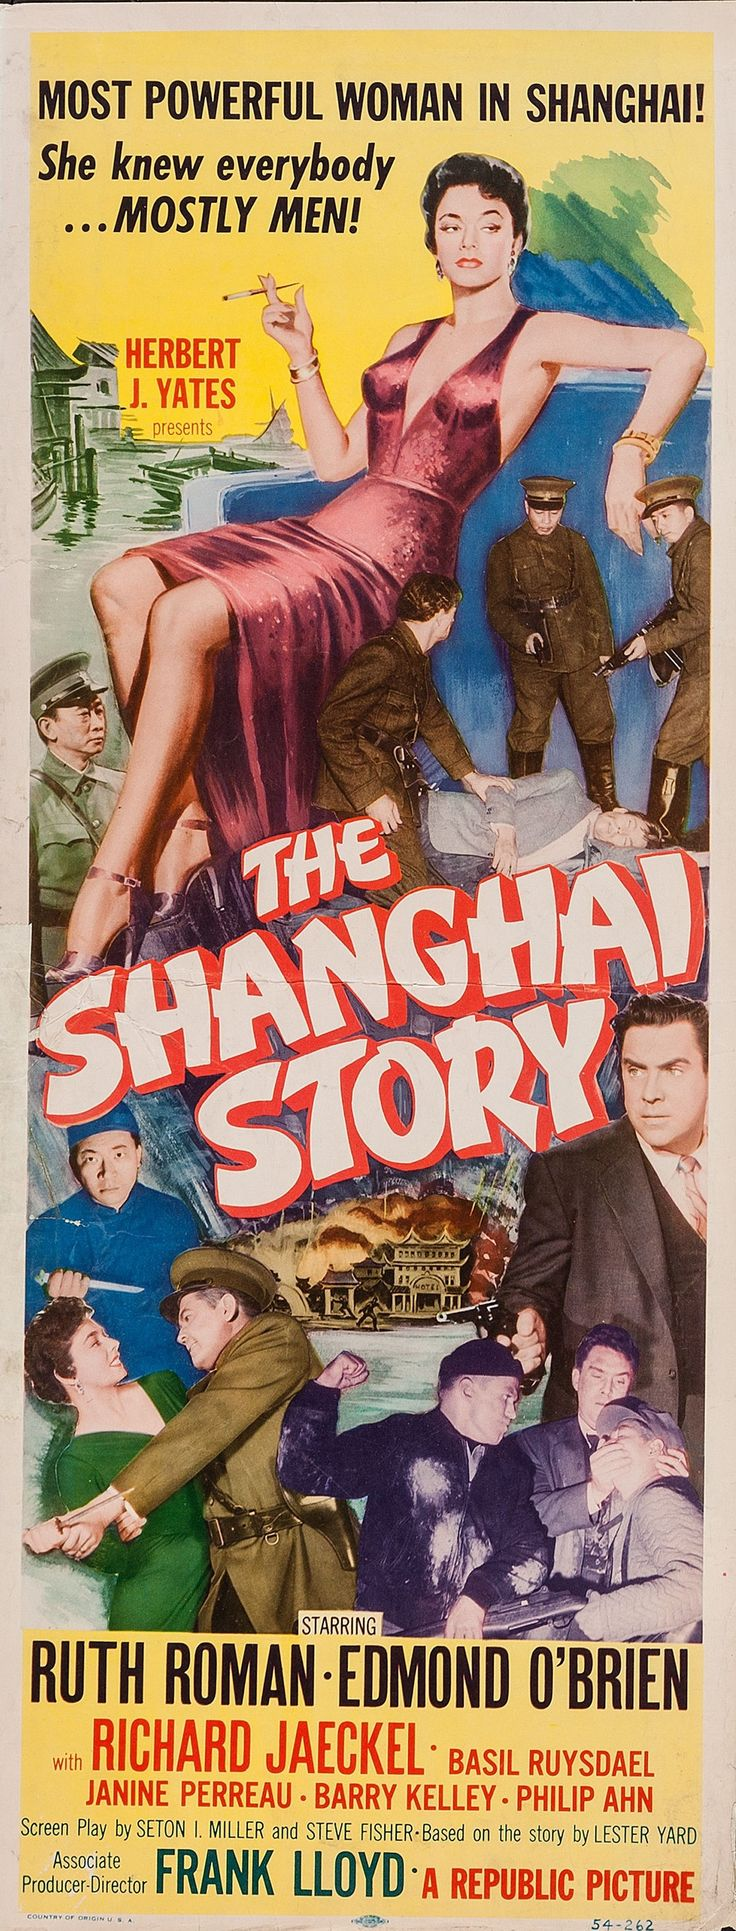 The Shanghai Story (1954) Stars: Ruth Roman, Edmond O'Brien, Richard Jaeckel, Whit Bissell, James Griffith ~ Director: Frank Lloyd